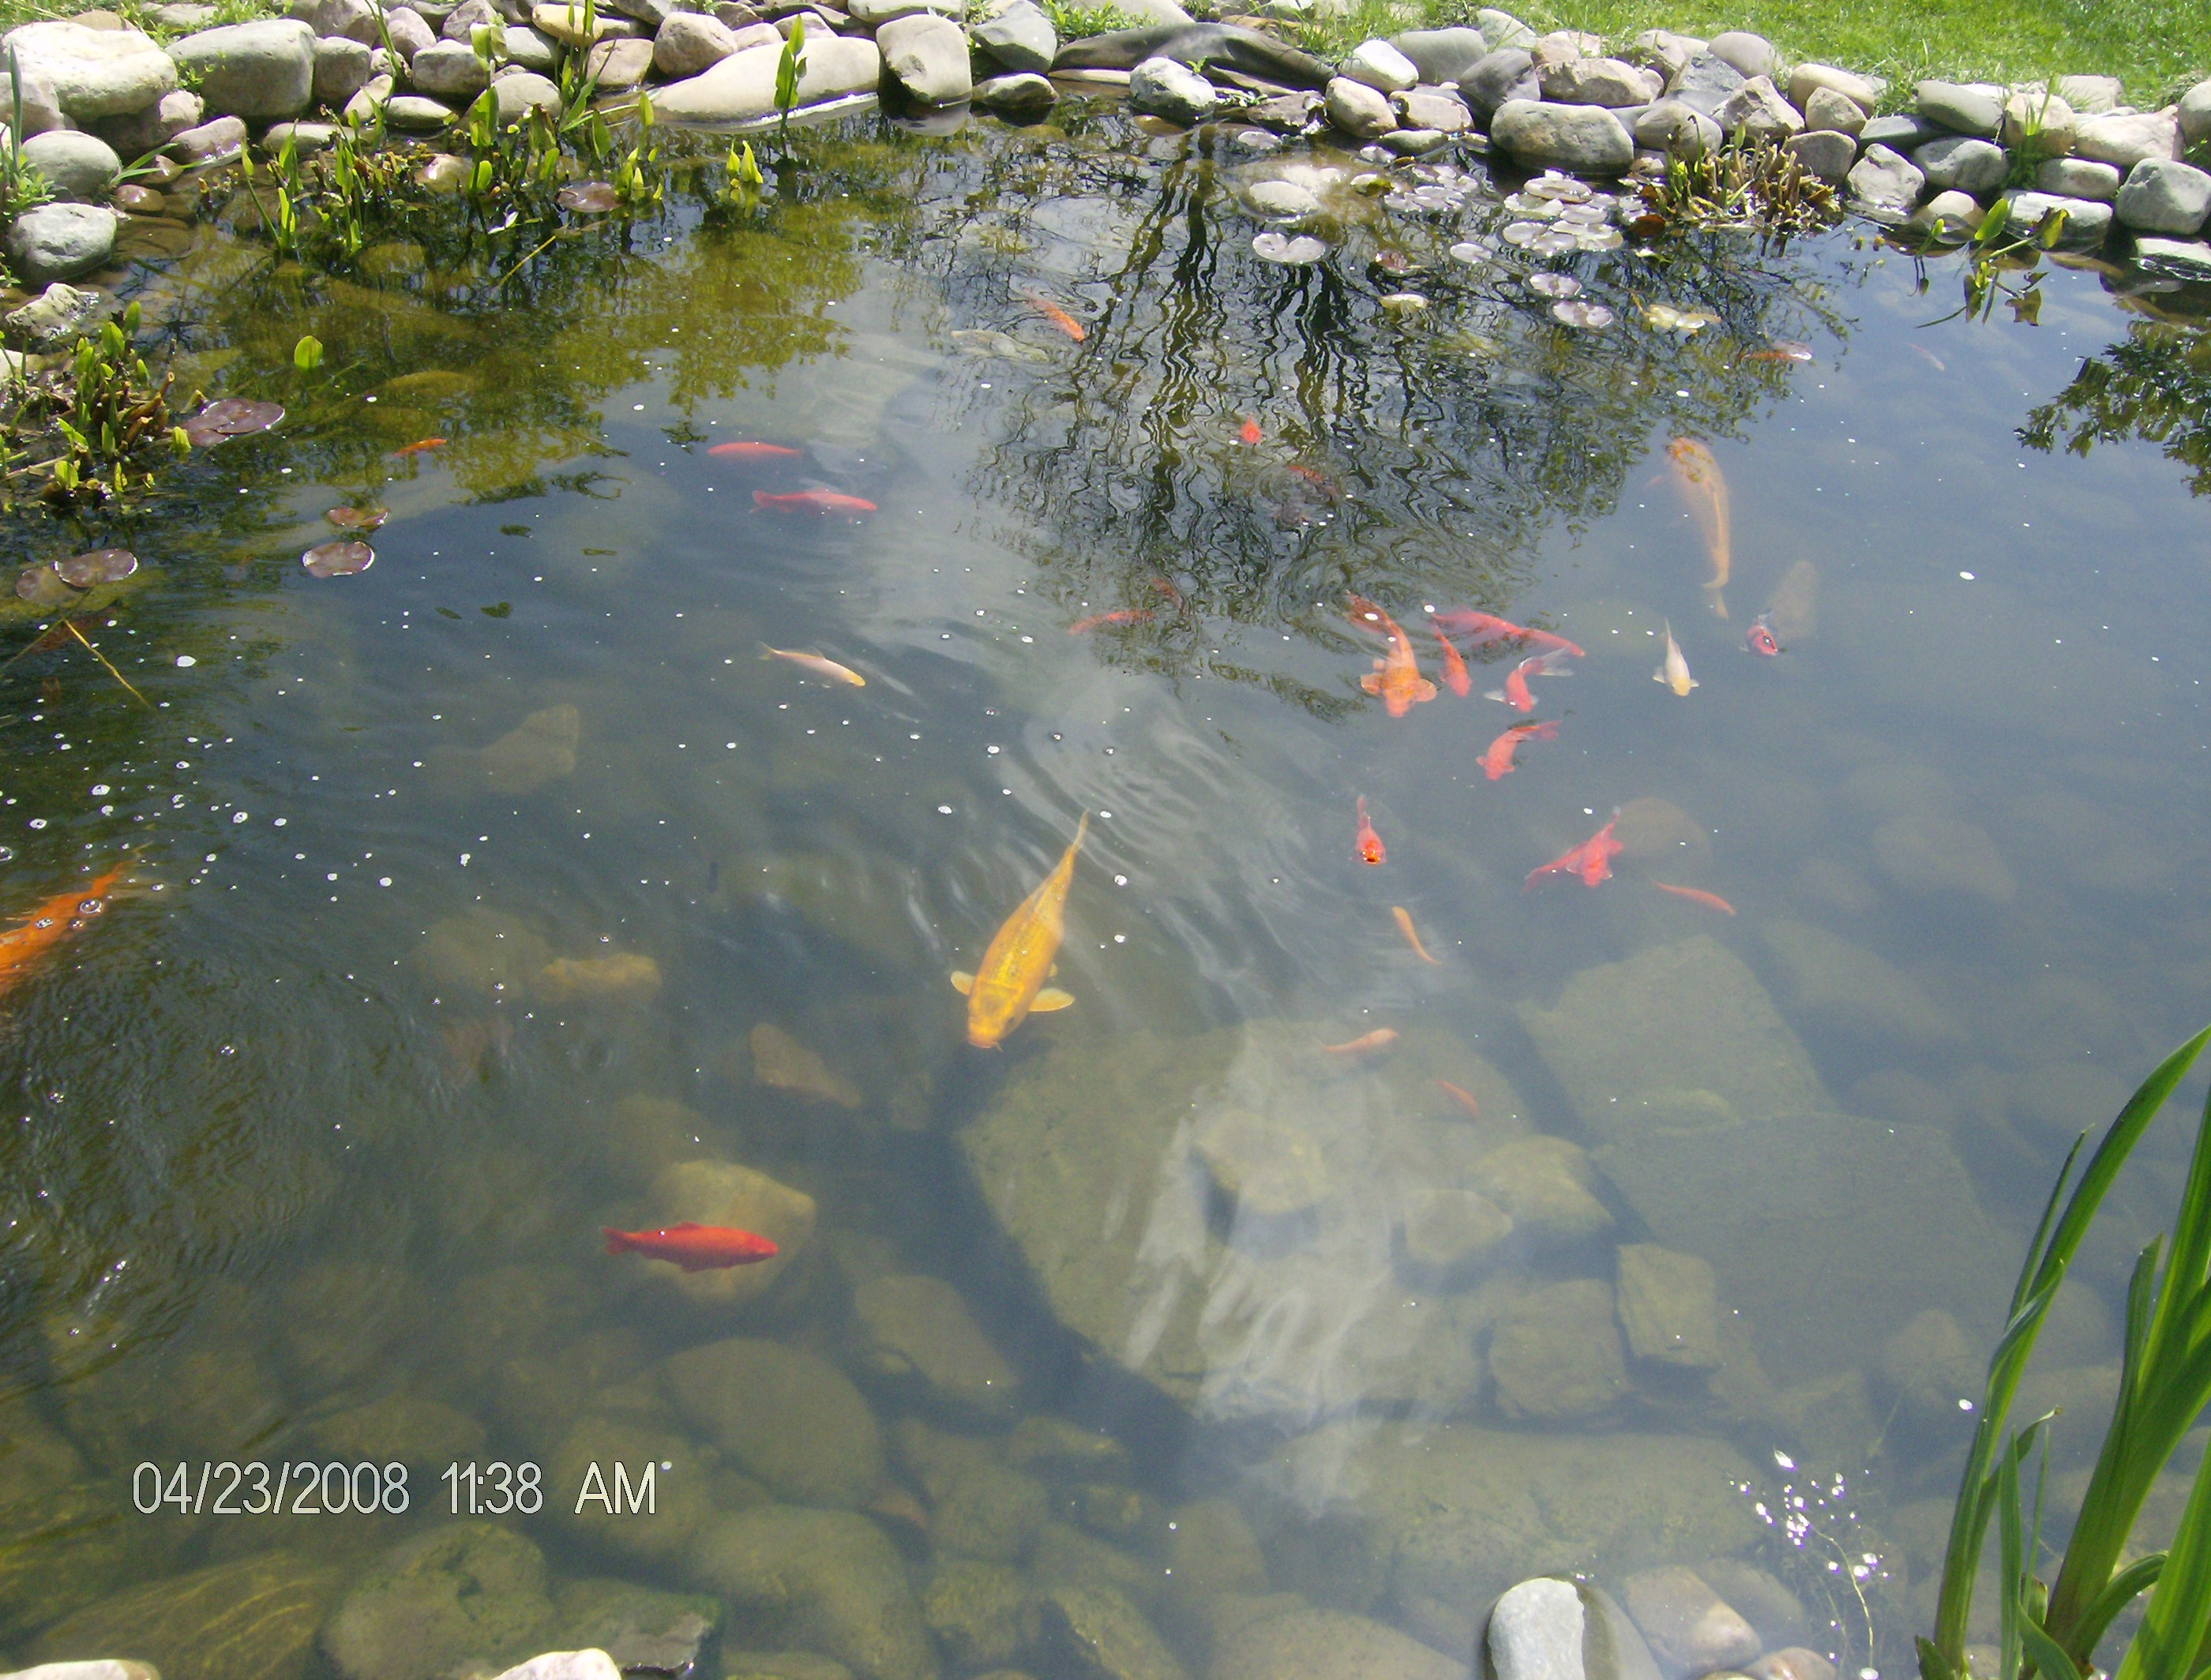 goldfish types for ponds images